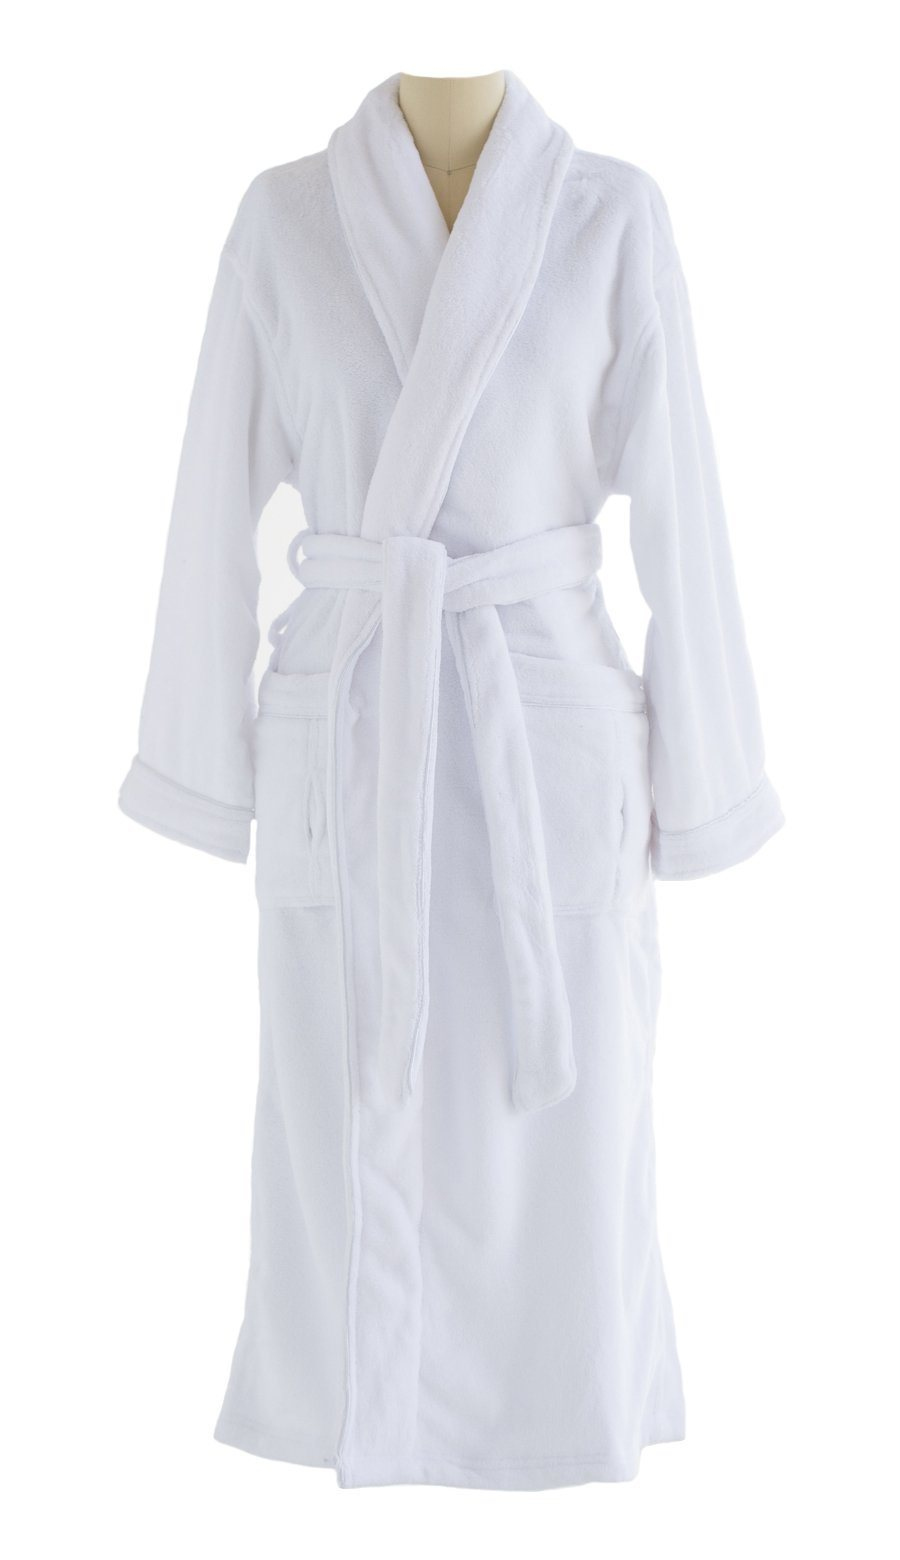 5bf68e6368 Unisex Monogrammed Bathrobes Nothing beats enjoying a relaxing weekend  getaway in a plush spa robe from